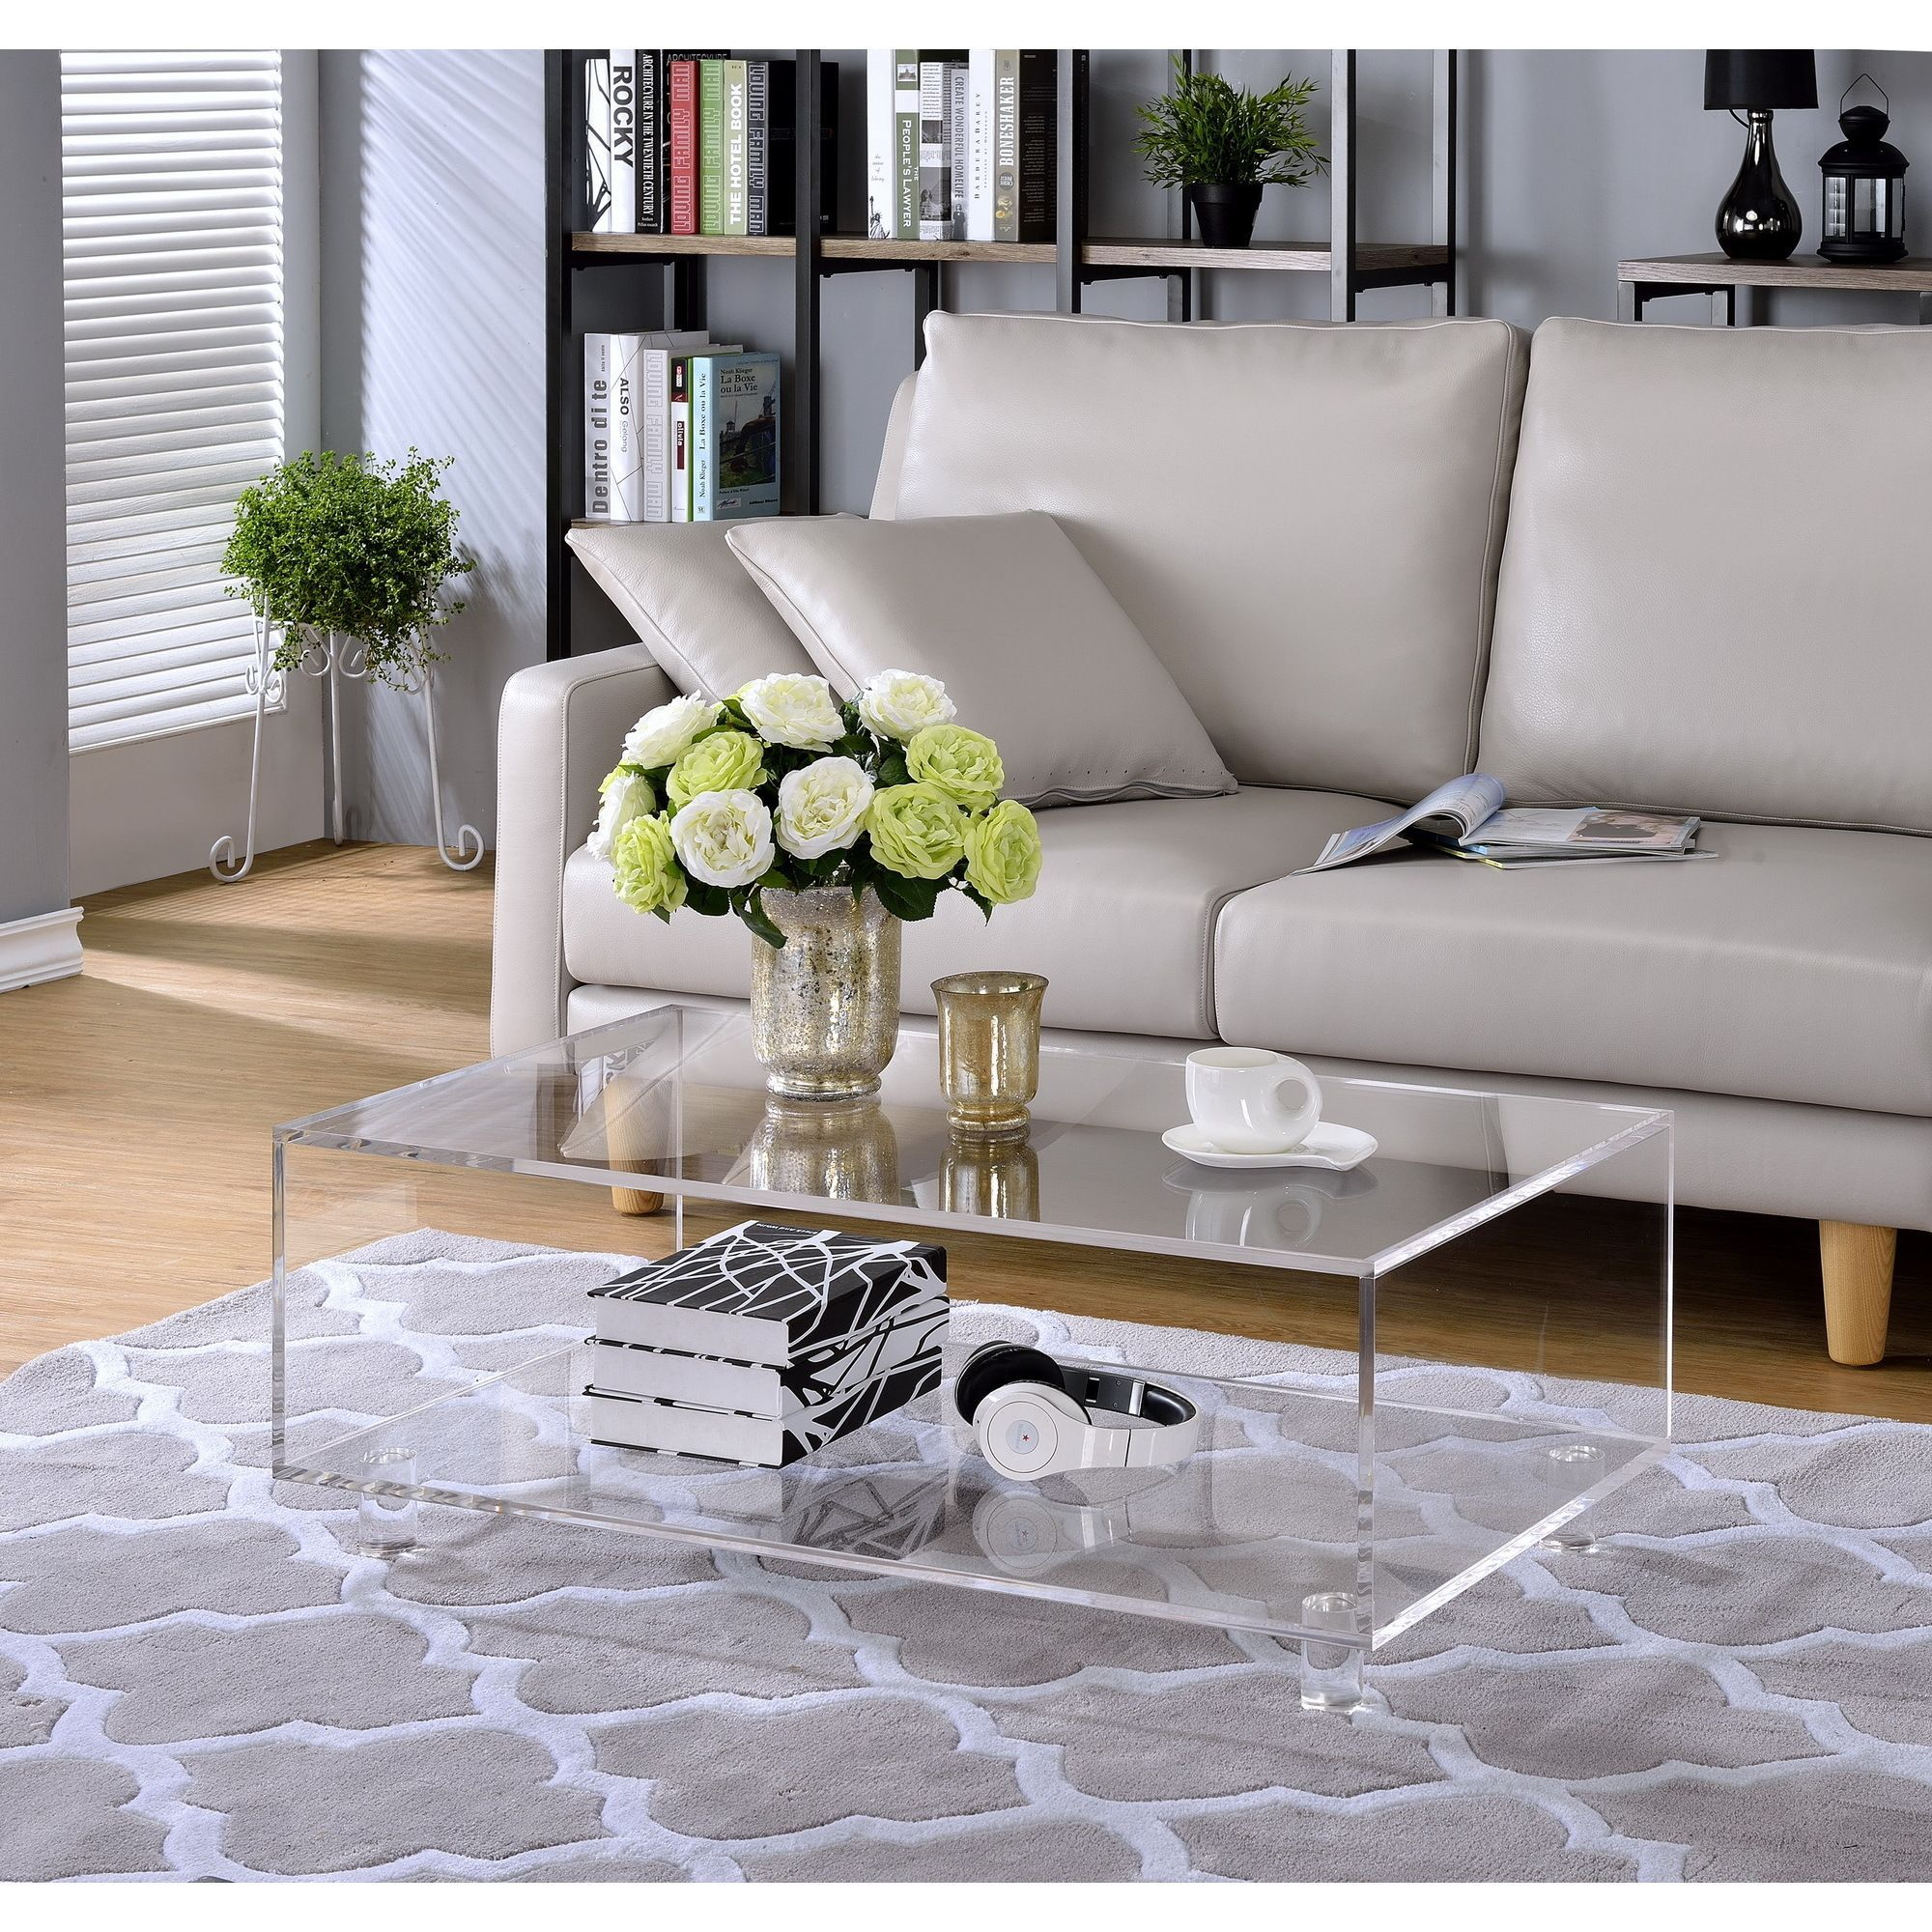 This Clear Lucite Acrylic Coffee Table Features A Modern Rectangle Design That Is Beautiful Addition To Any Home Or Office